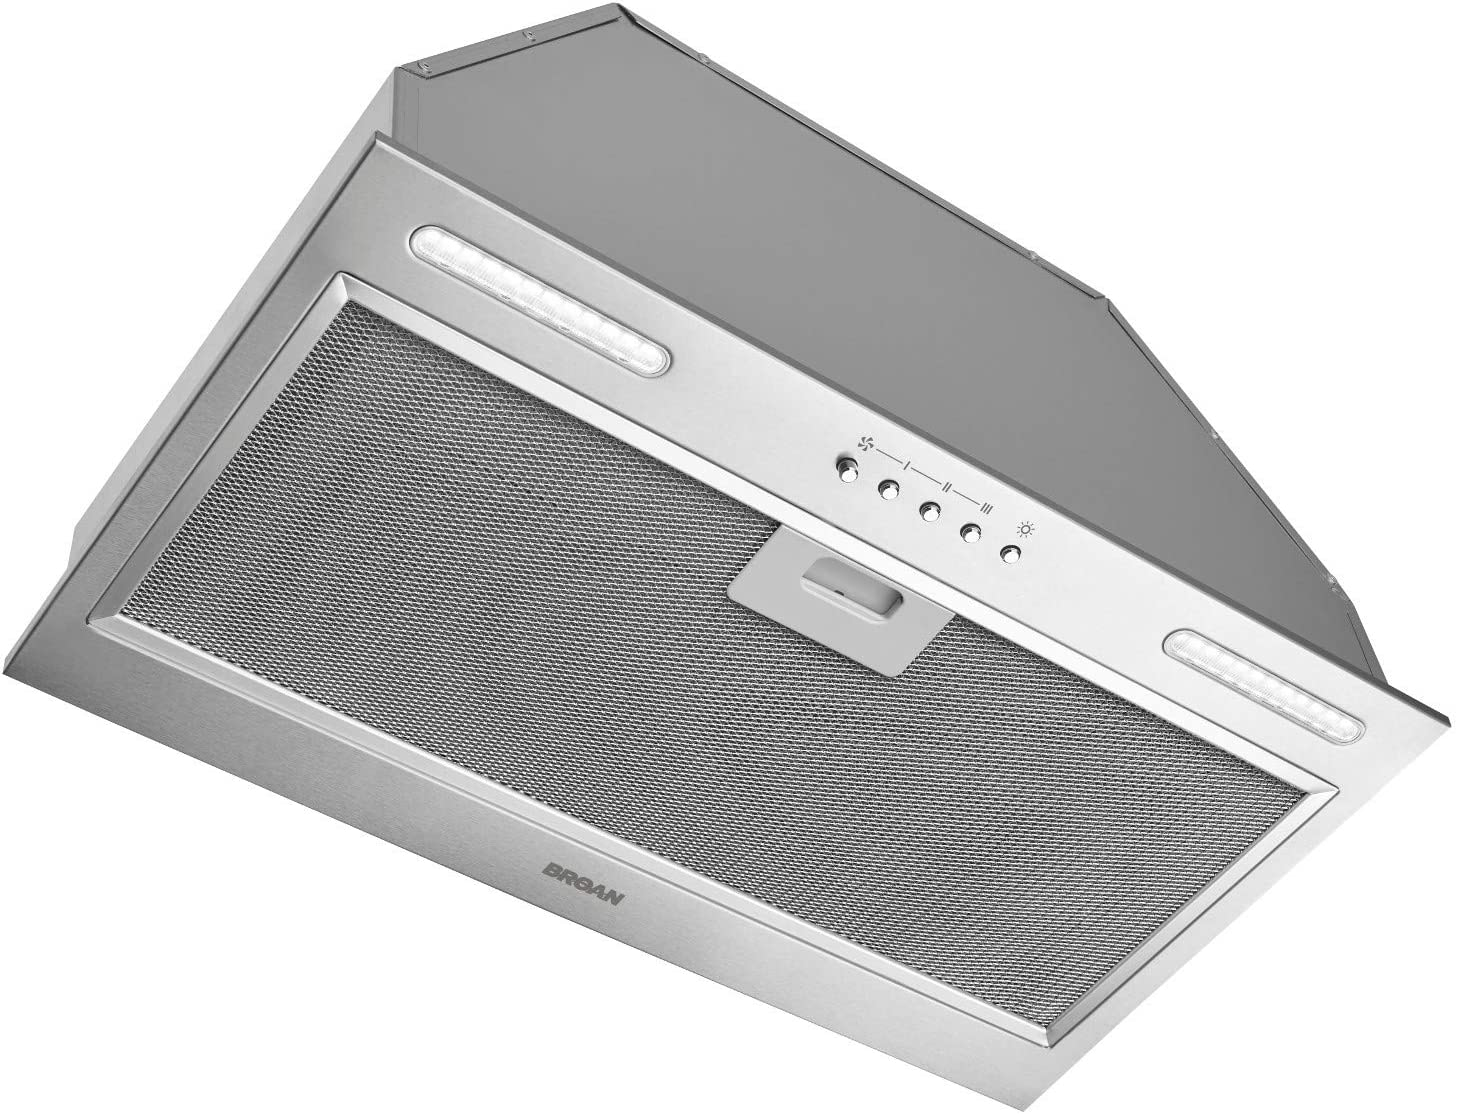 Broan-NuTone PM390SSP Stainless Steel Custom Range Hood Power Pack with LED Lights, 390 CFM